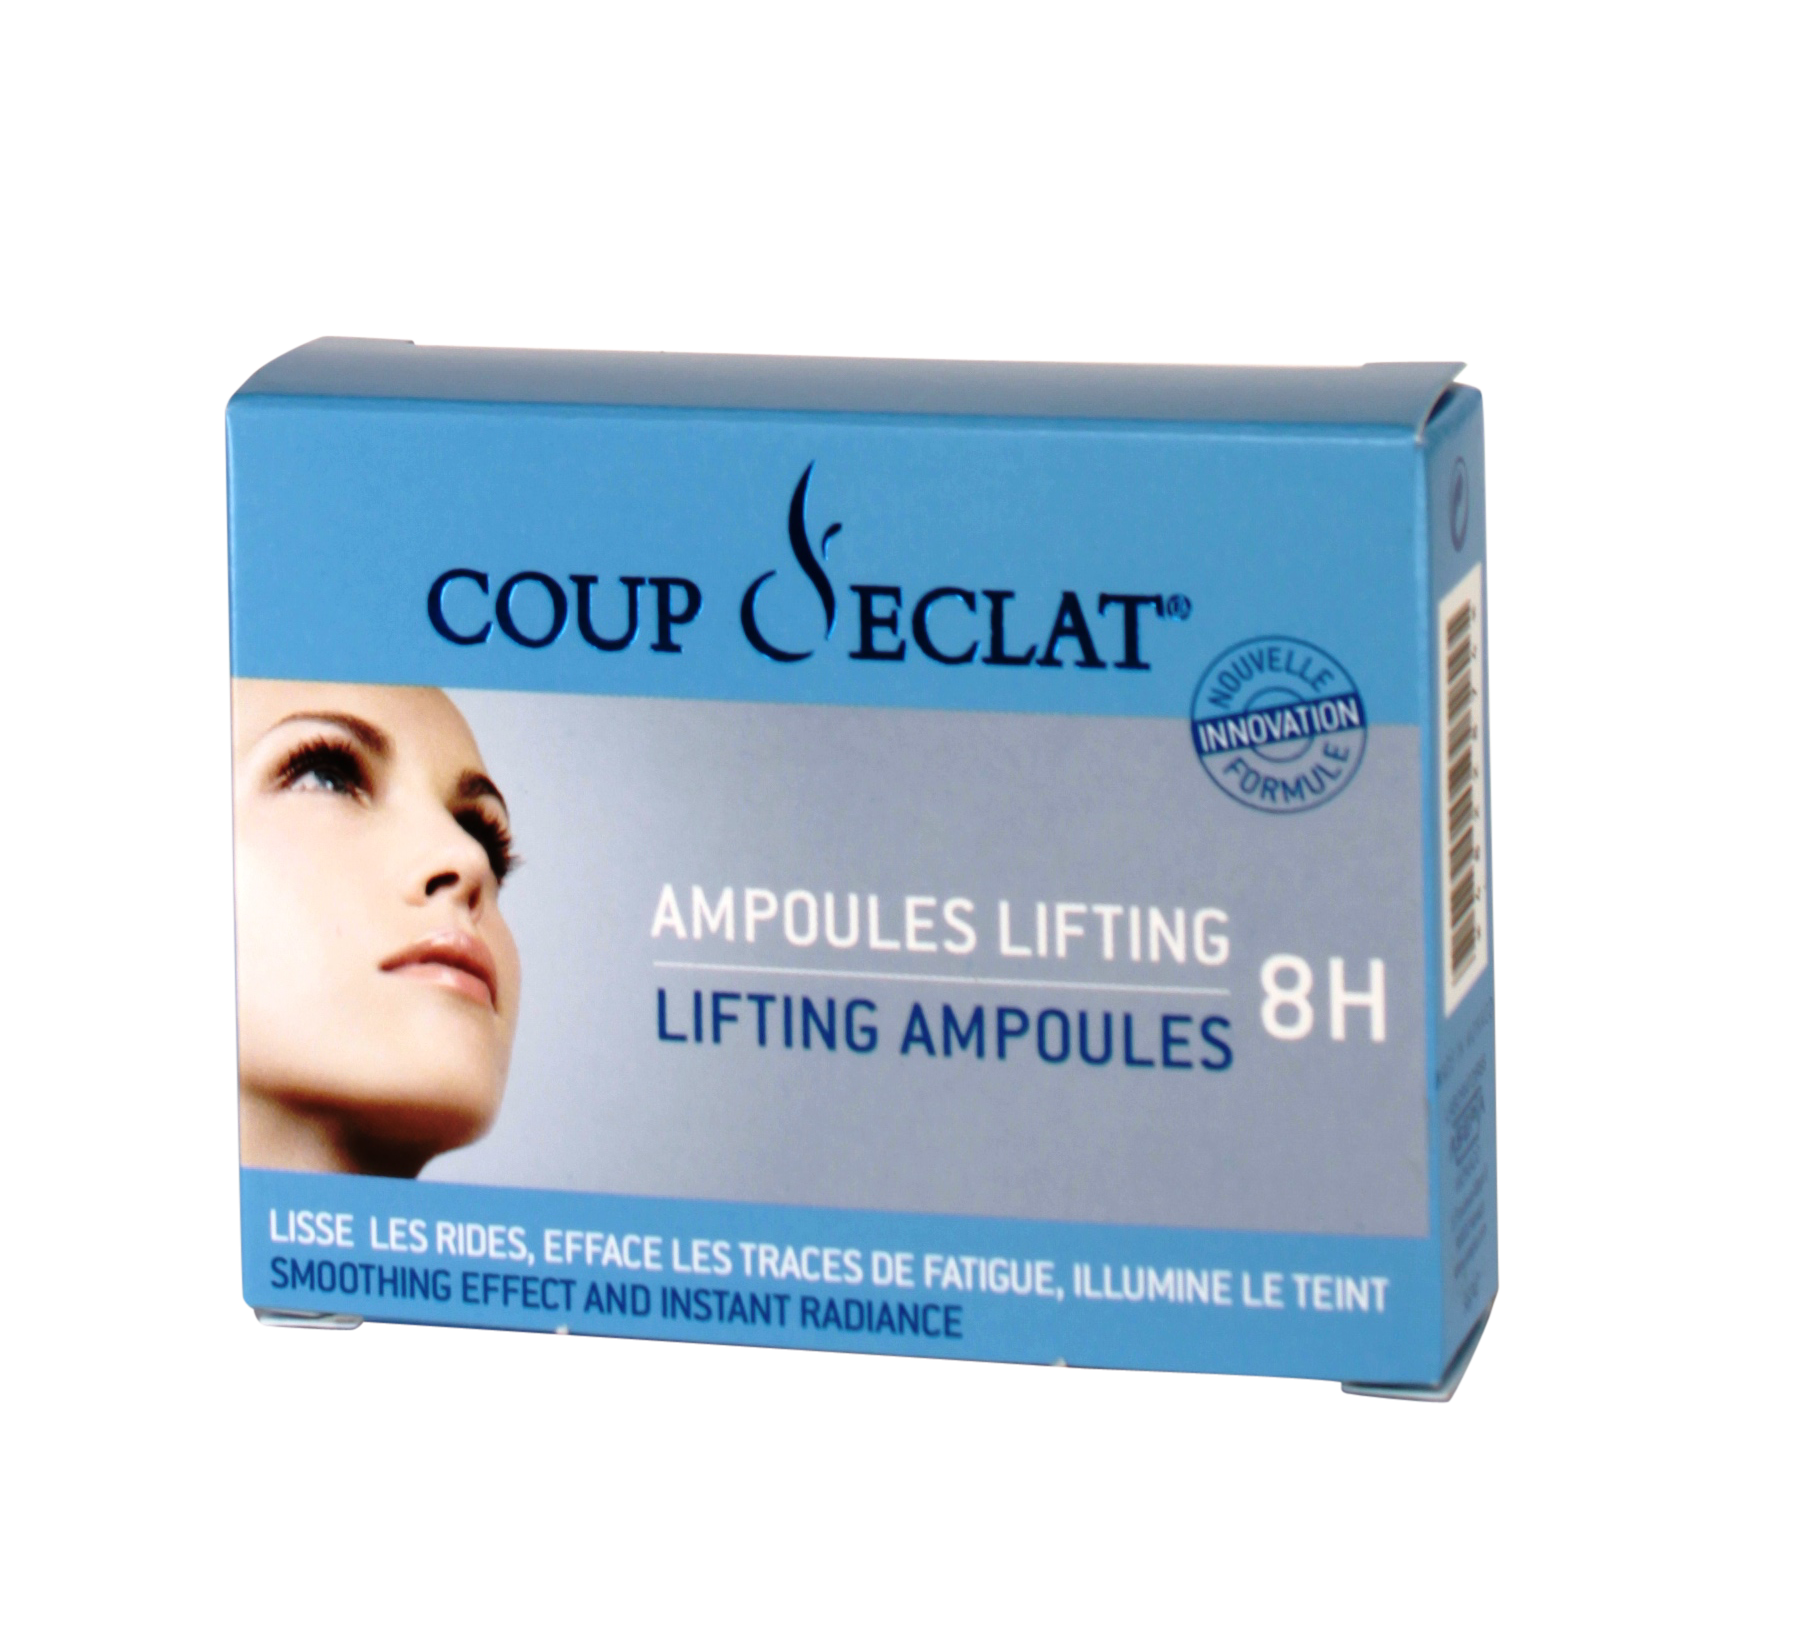 Coup d 39 clat ampoule lifting maquillage pharmacie illicopharma - Coup eclat lifting ampoules ...